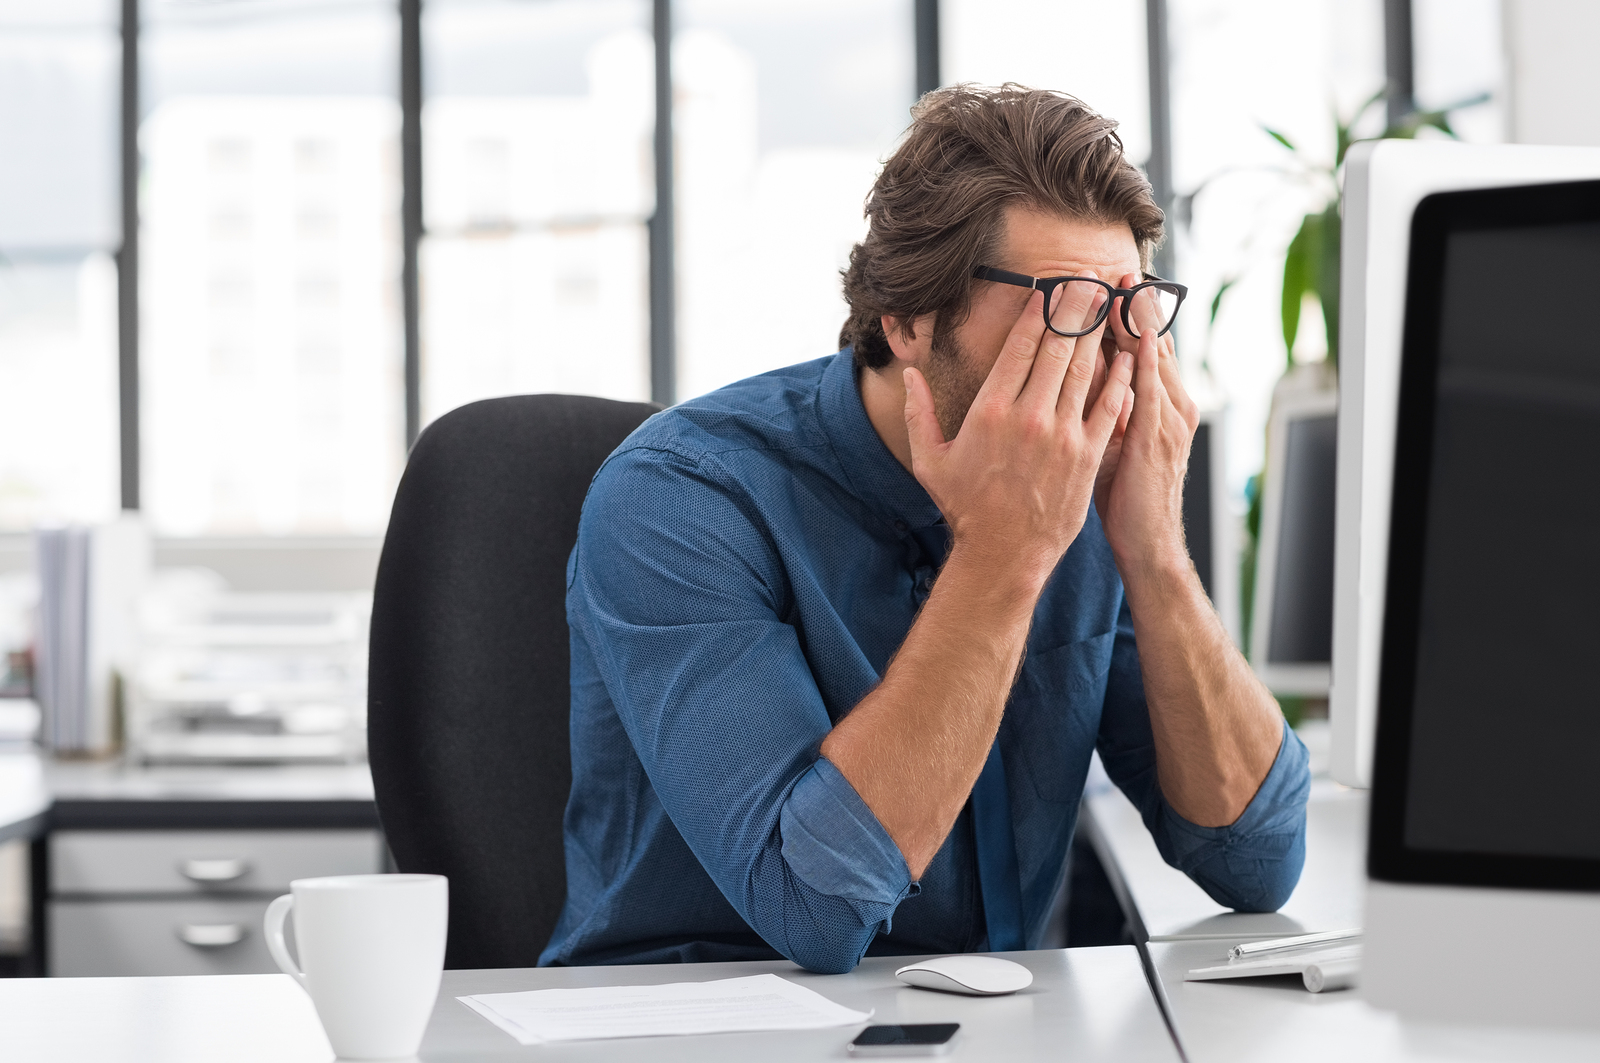 We help stressed out entrepreneurs - In the world today, 99% of entrepreneurs are exhausted, stressed out, easily distracted, working harder and harder with little to show, and looking and feeling significantly older as they age.